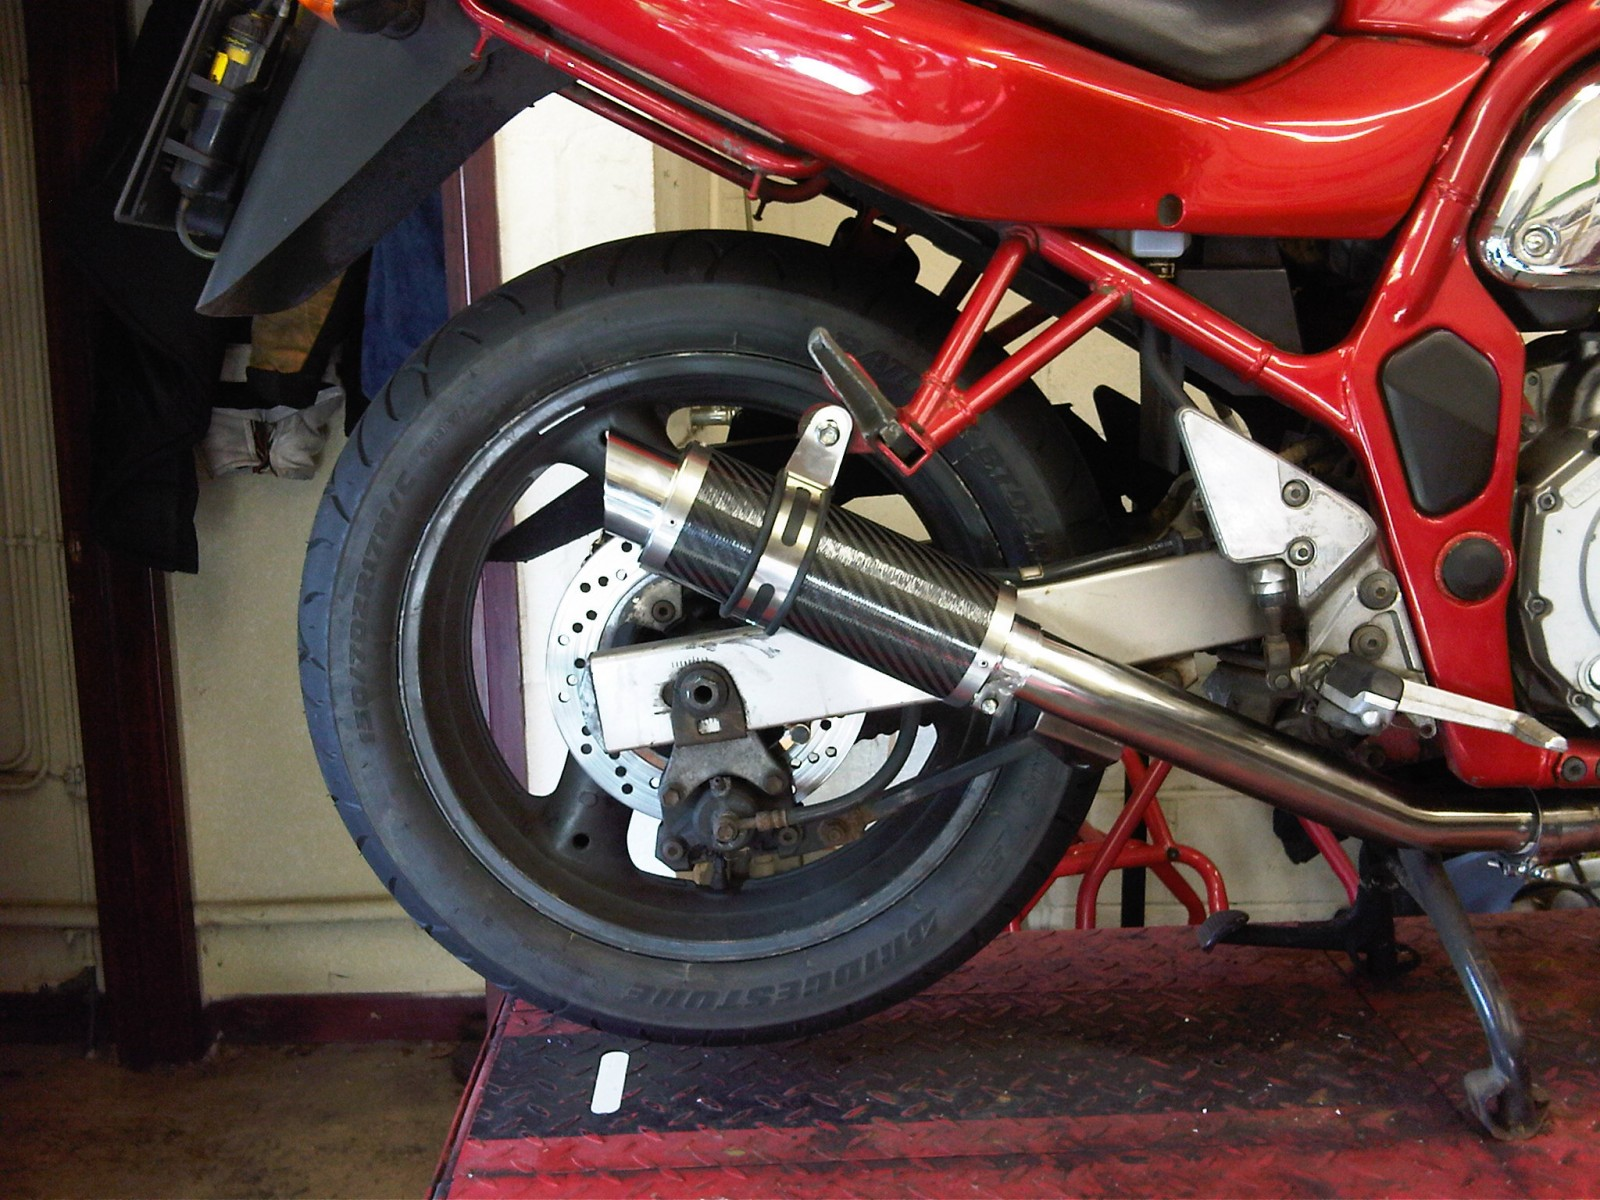 """Suzuki GSF 600 Bandit<p>A16 Moto GP Exhaust with Titanium Type Outlet</p><br/><a href=""""https://a16roadnracesupplies.co.uk/product/a16-suzuki-exhausts/"""">Buy now!</a>"""